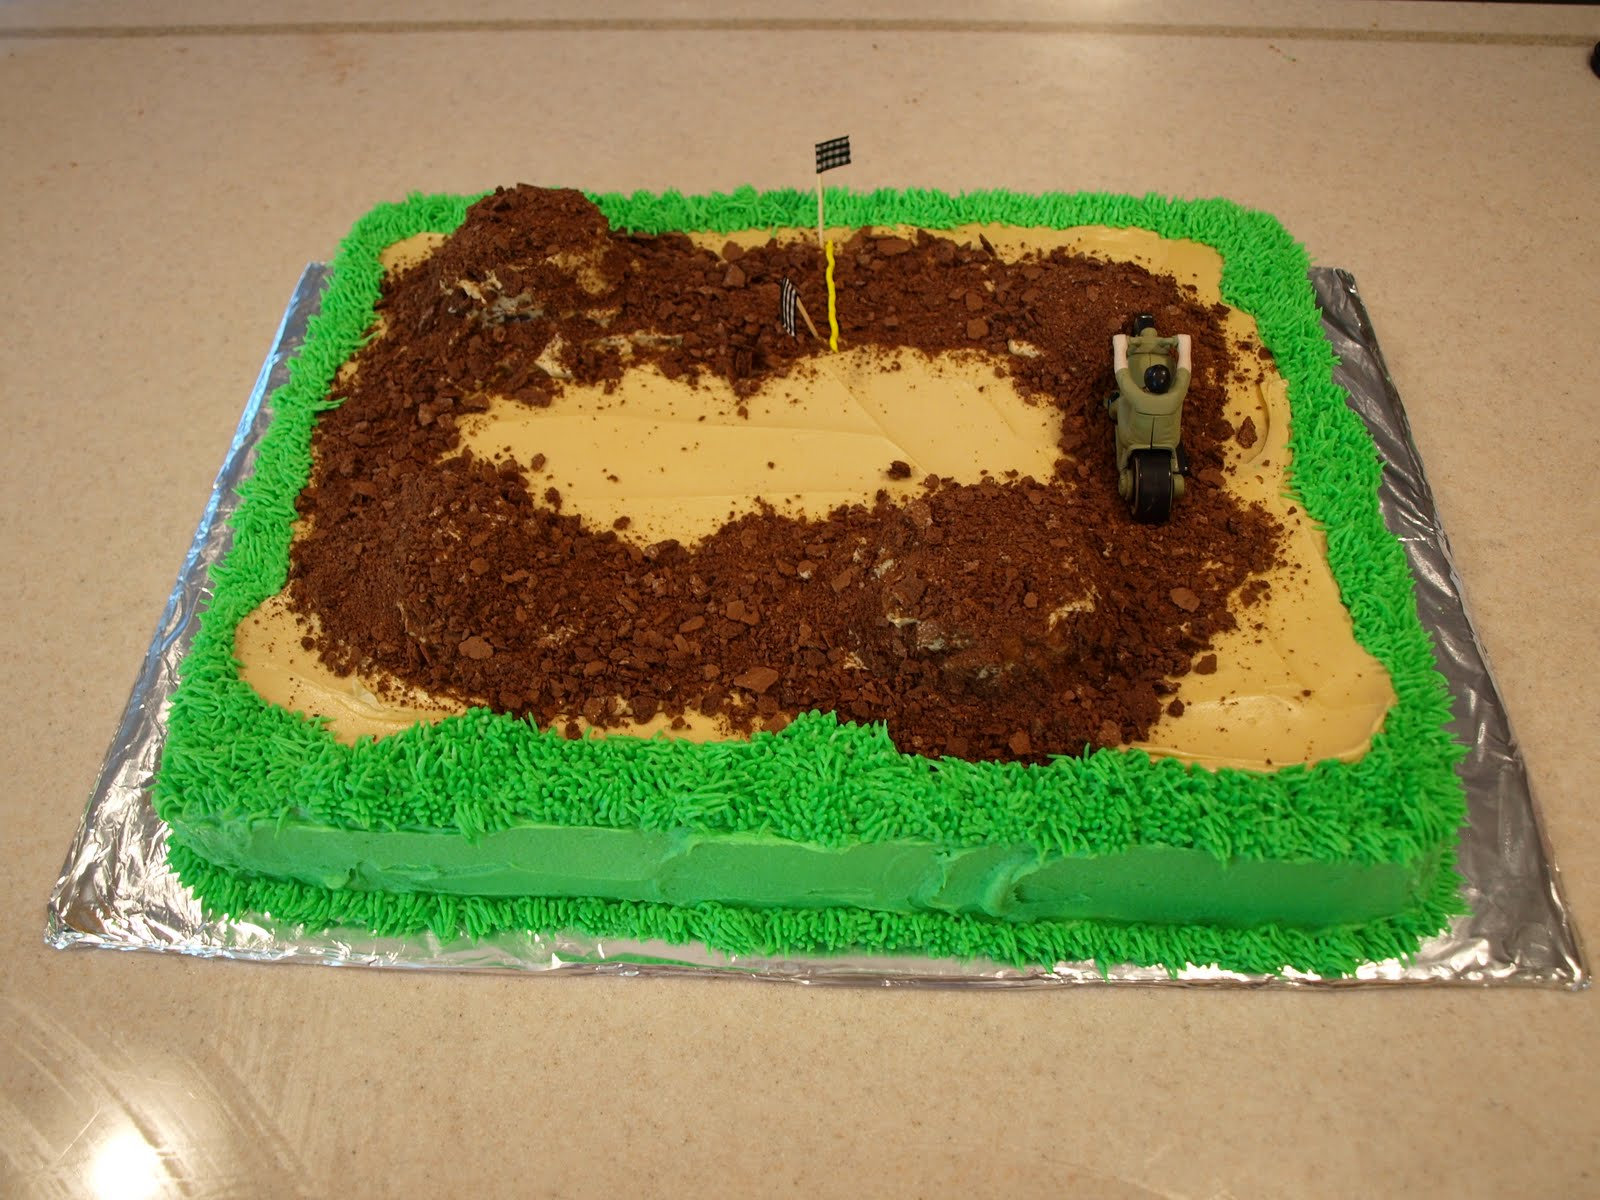 dirt bike cake - photo #36